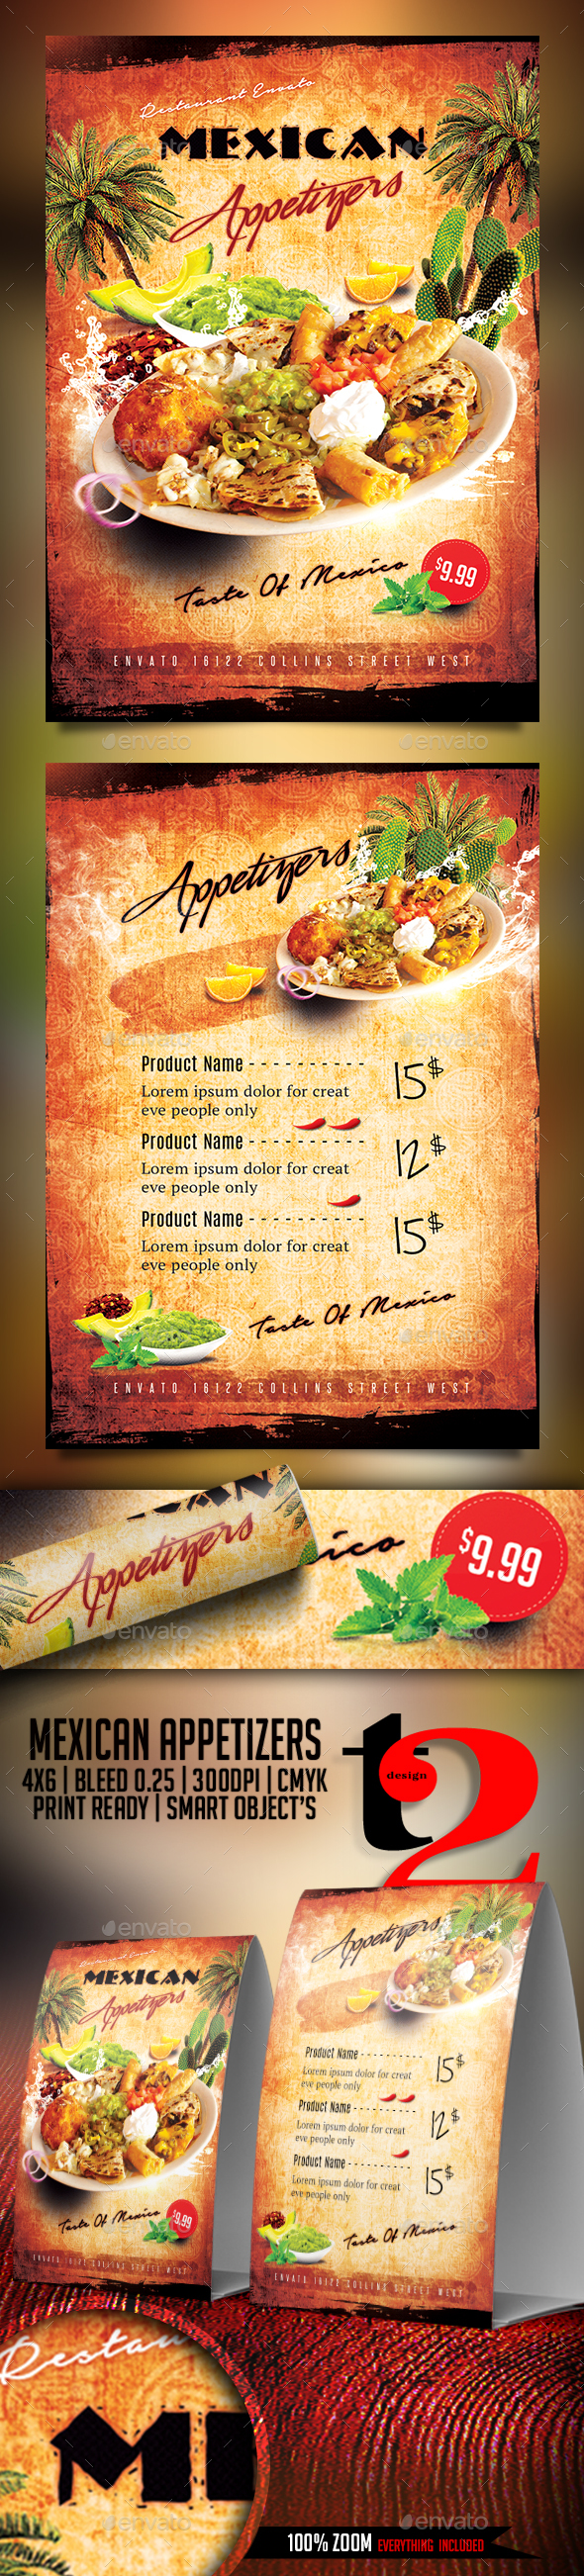 Mexican Appetizers Flyer Template - Restaurant Flyers